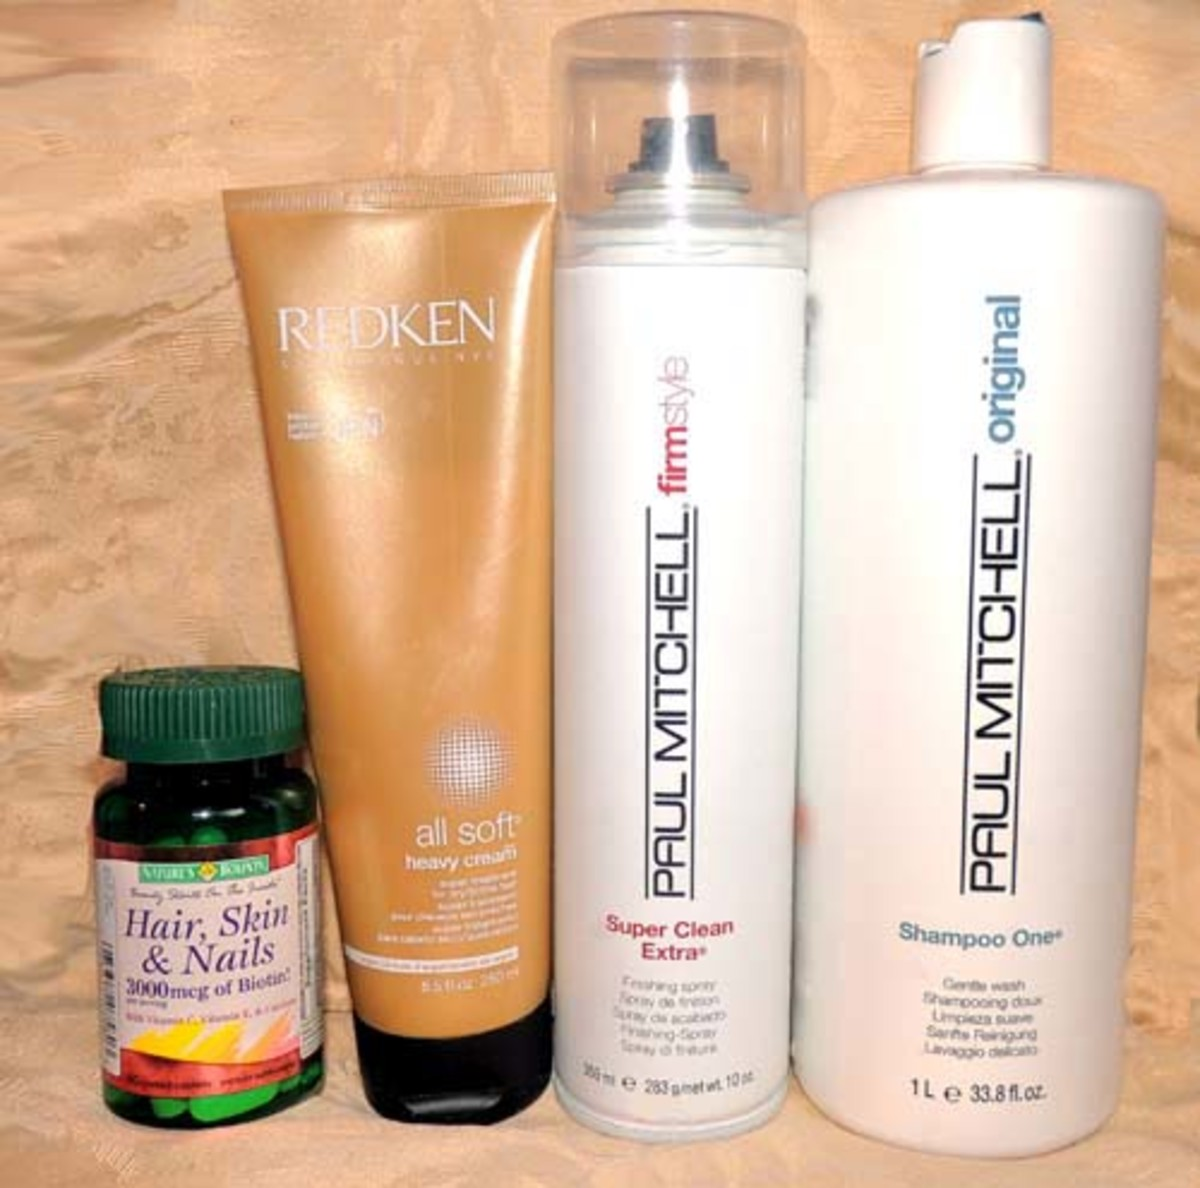 Paul Mitchell: Shampoo # 1; Paul Mitchell: Super Clean Extra (hairspray) Redken: All-Soft Heavy Cream (creme rinse) and the occasional: Hair Vitamin